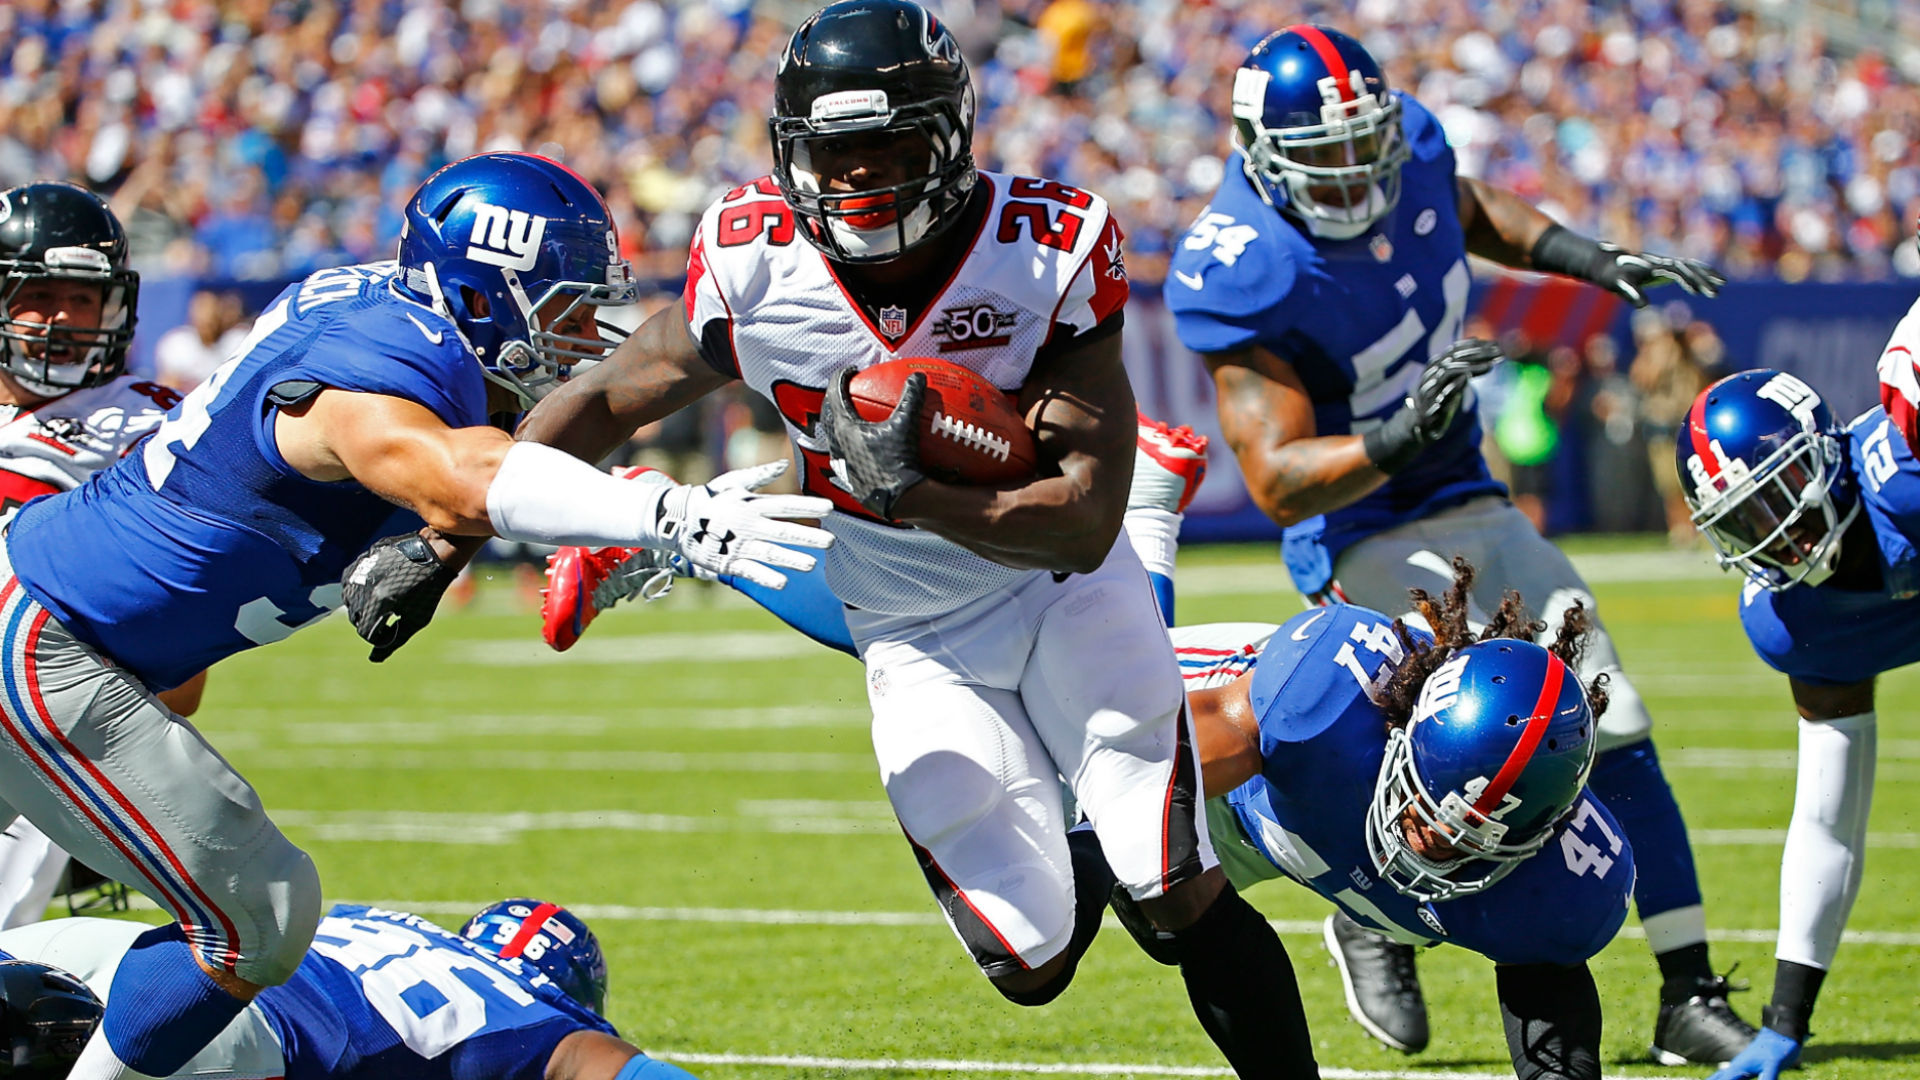 tevin-coleman-092115-usnews-getty-ftr